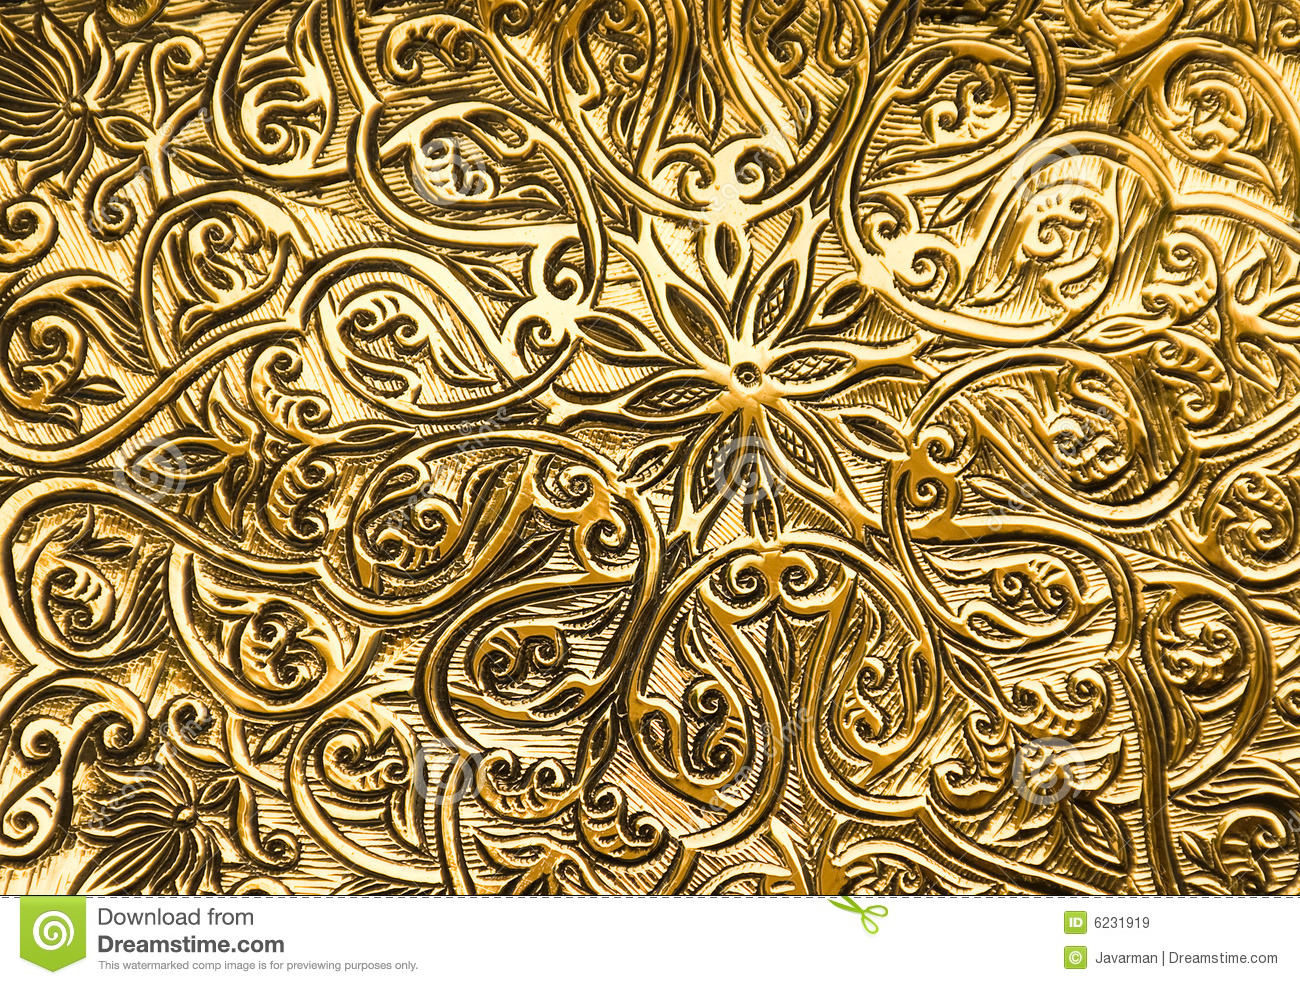 Wallpaper Hd Muslim Background With Oriental Ornaments Royalty Free Stock